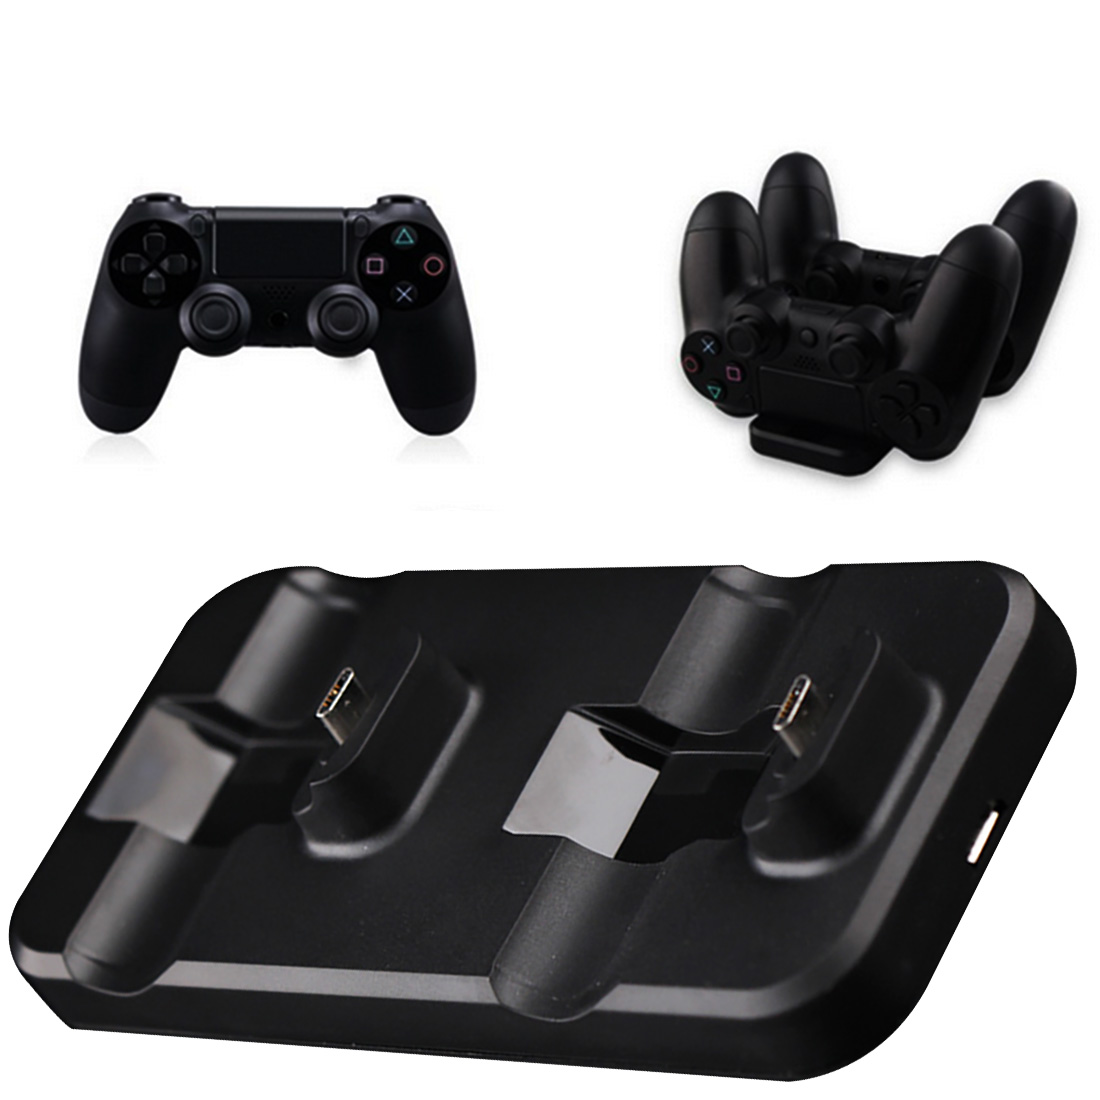 Marsnaska Rechargeable Battery Charger + Handle Charging Cable Sets For Sony Playstation 4 PS4 Controller Gamepad